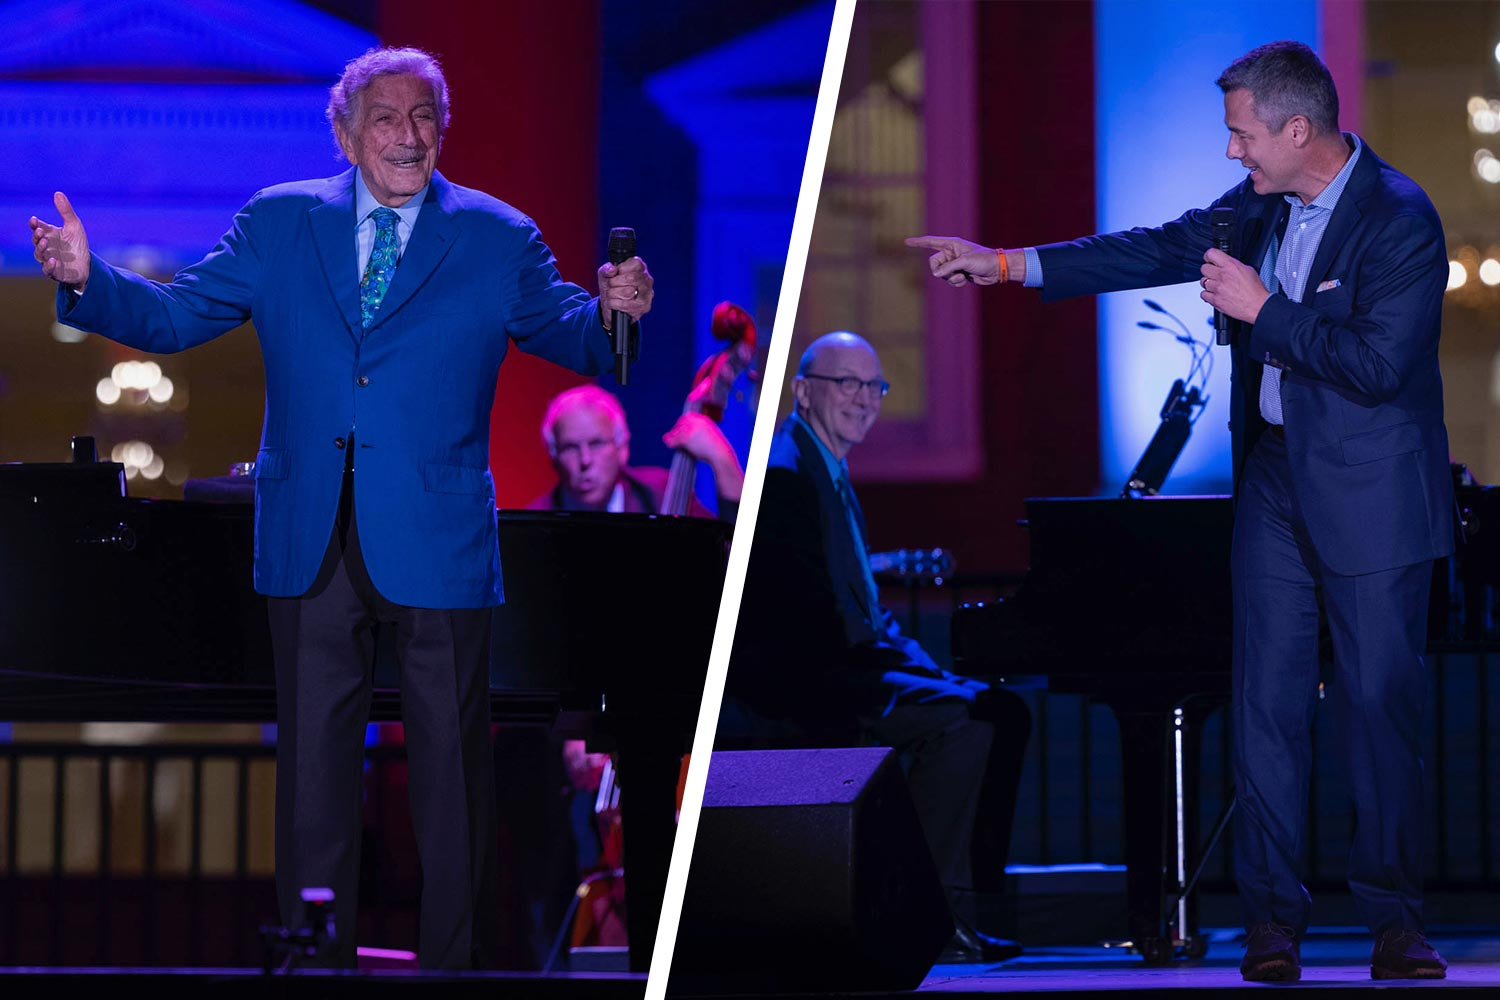 Double trouble? Tony Bennett the singer met Tony Bennett the coach on the Lawn Saturday night. (Photos by Sanjay Suchak, University Communications)